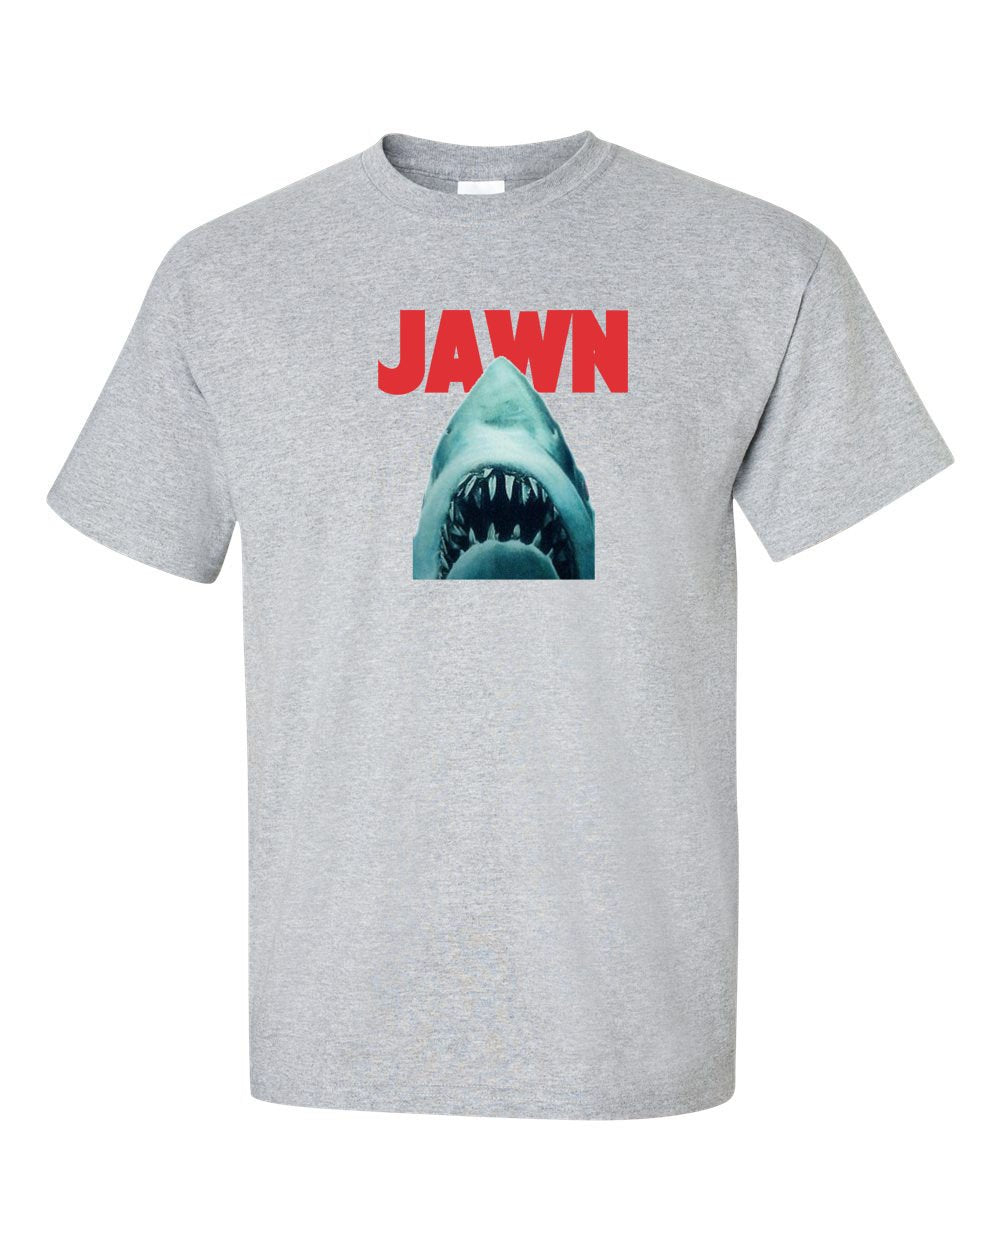 Jaws Jawn Mens/Unisex T-Shirt